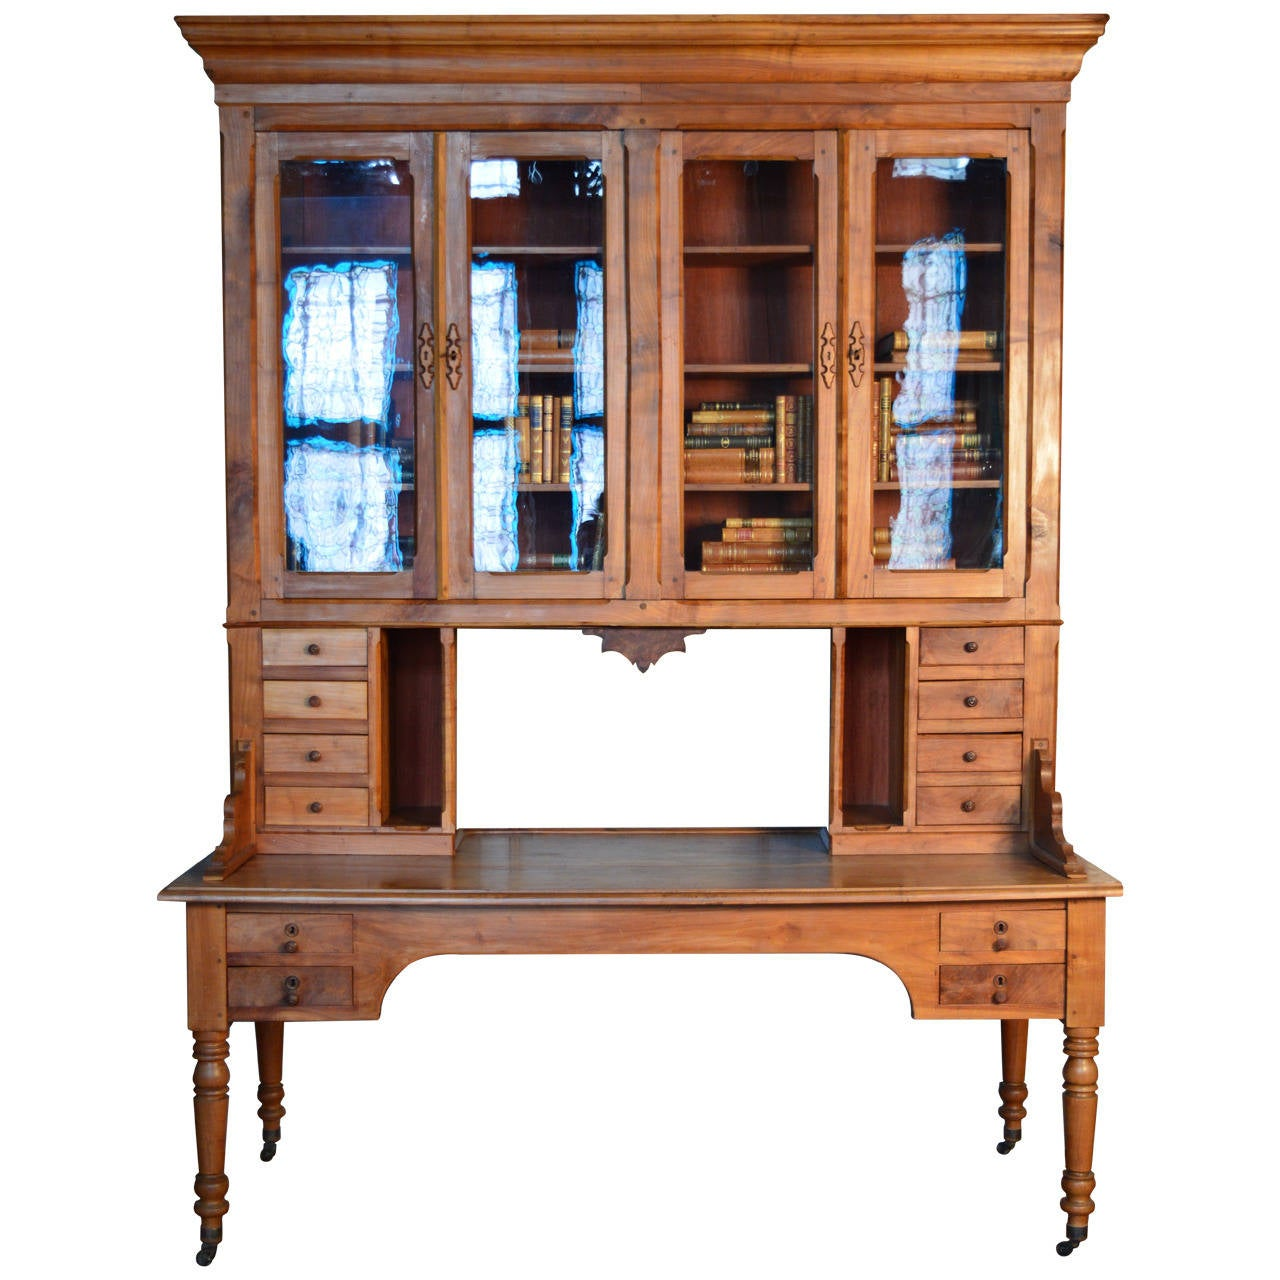 #2271A9 19th Century French Cherry Wood Bibliotech Bookcase Desk At 1stdibs with 1280x1280 px of Most Effective Solid Wood Bookcases Cherry 12801280 wallpaper @ avoidforclosure.info